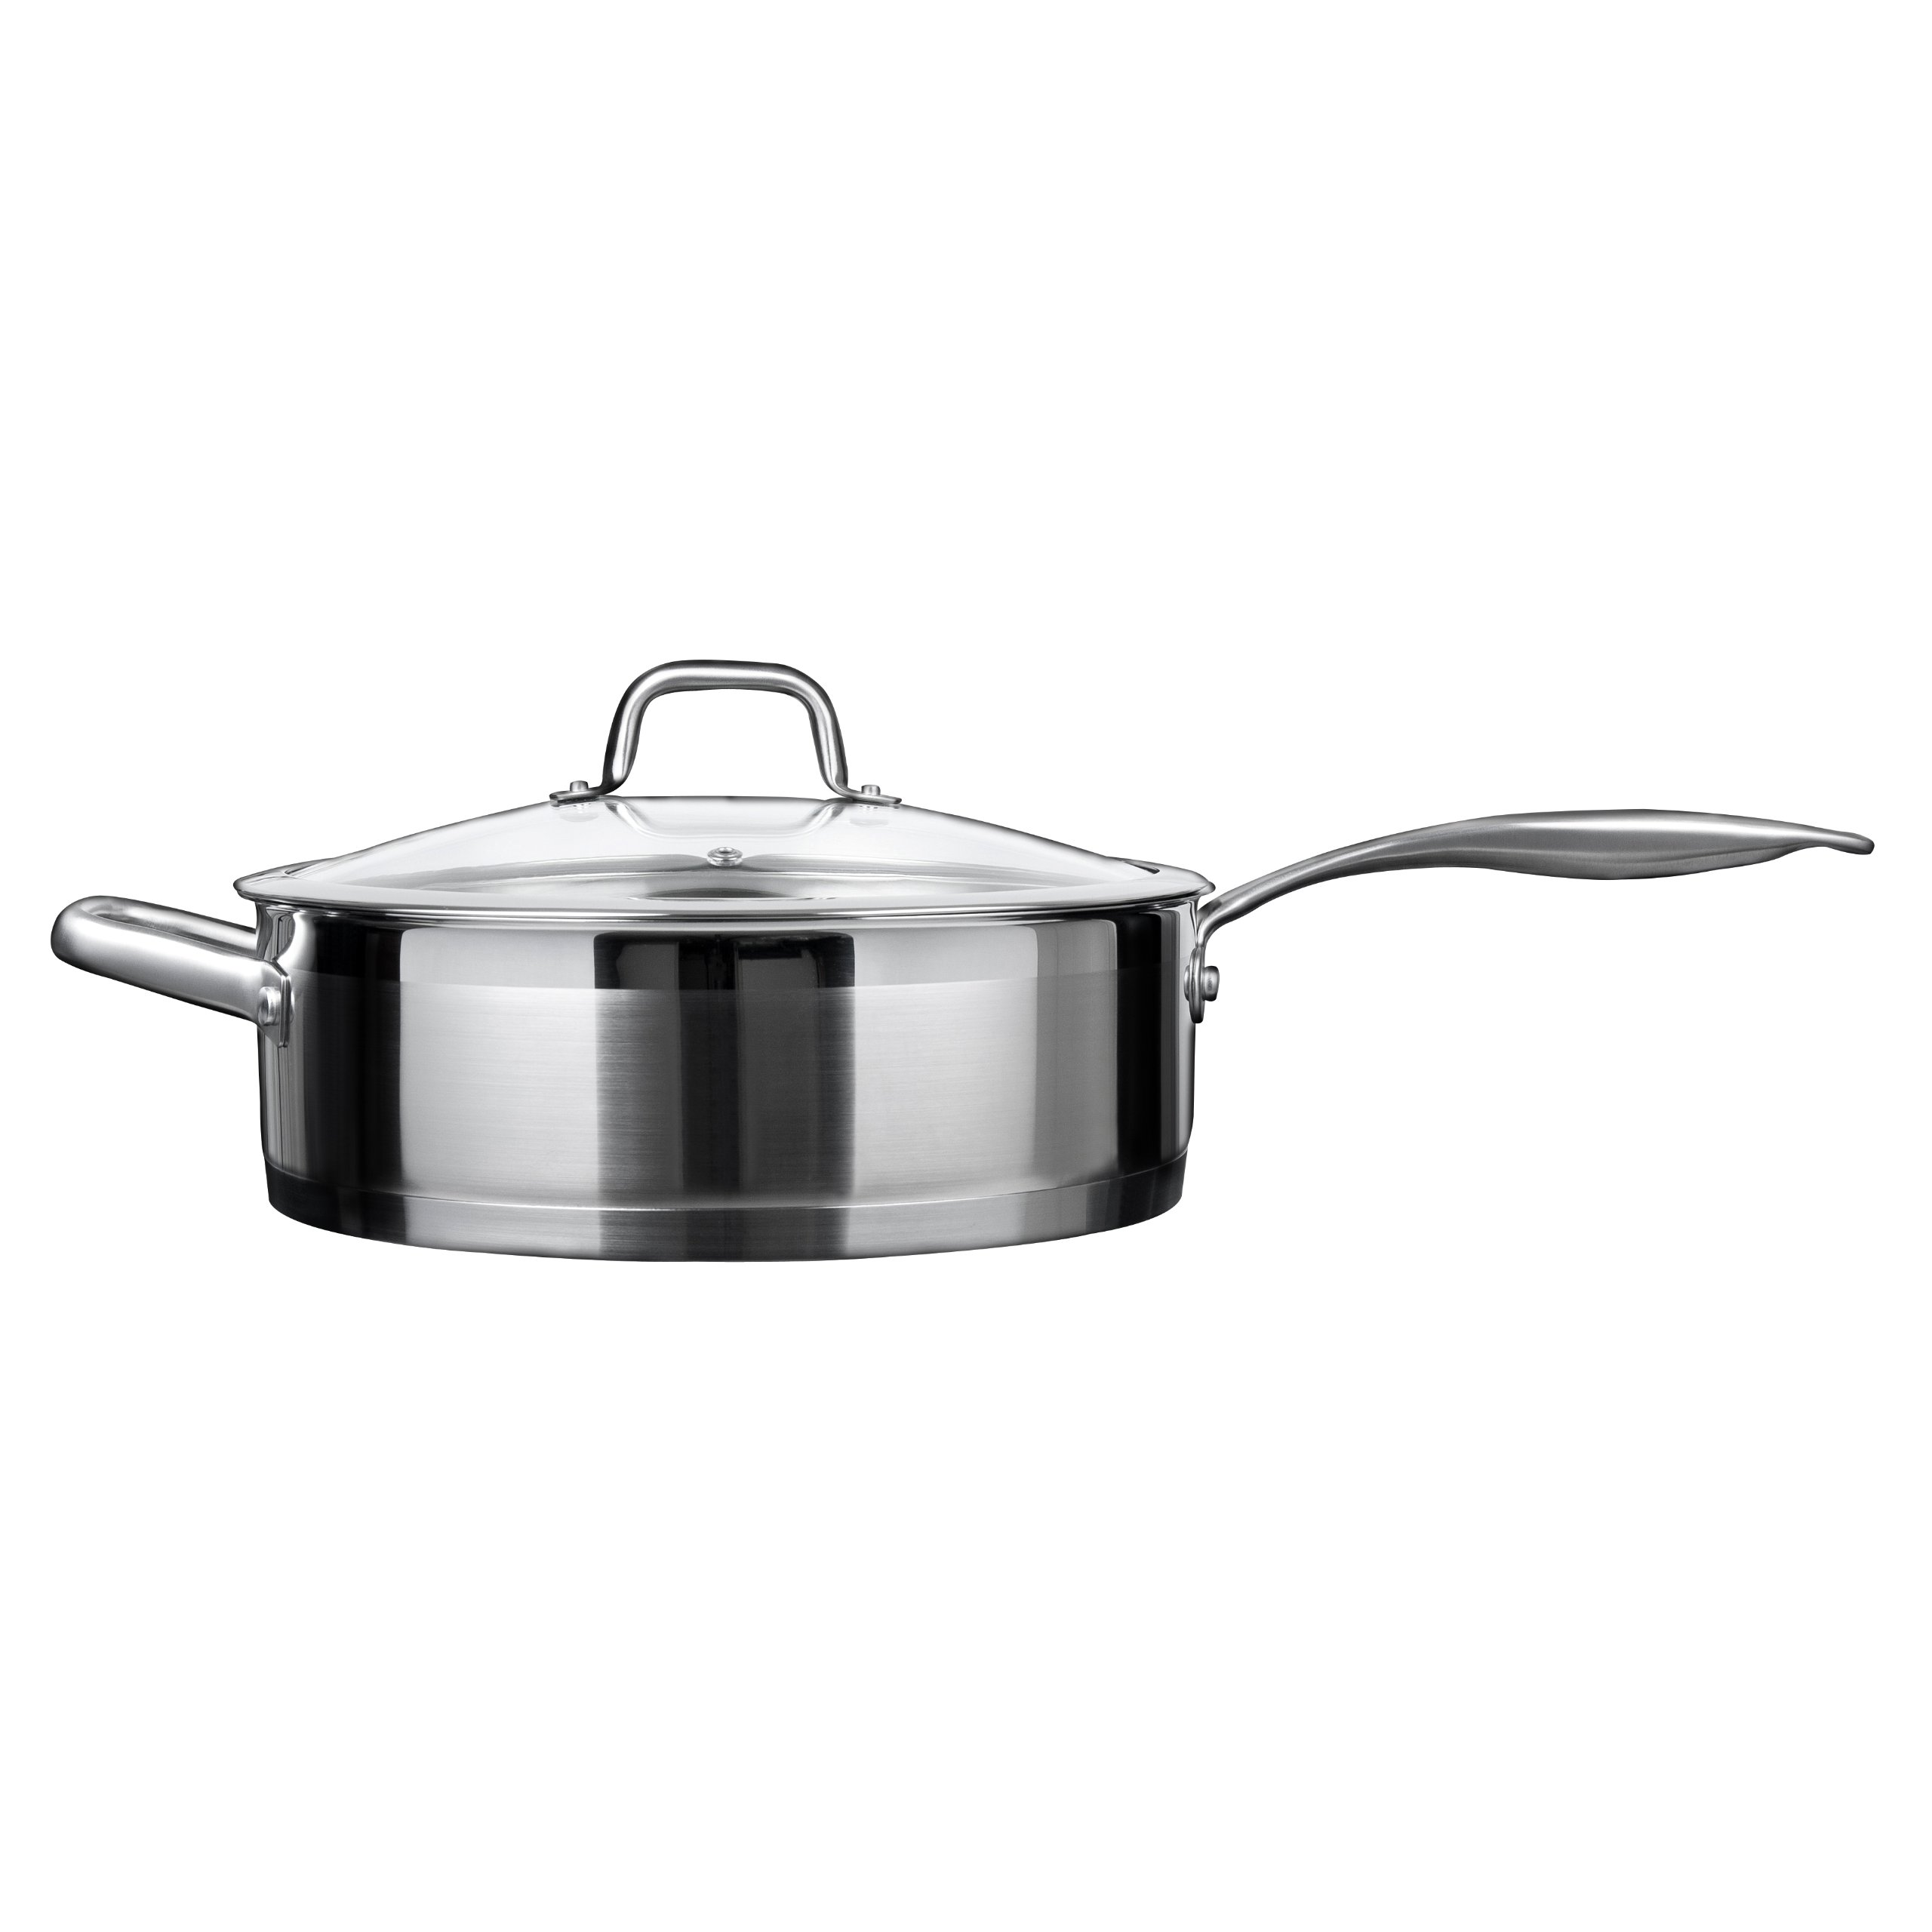 Duxtop Professional Stainless-steel Induction Ready Cookware Impact-bonded Technology (5.5Qt Saute Pan)